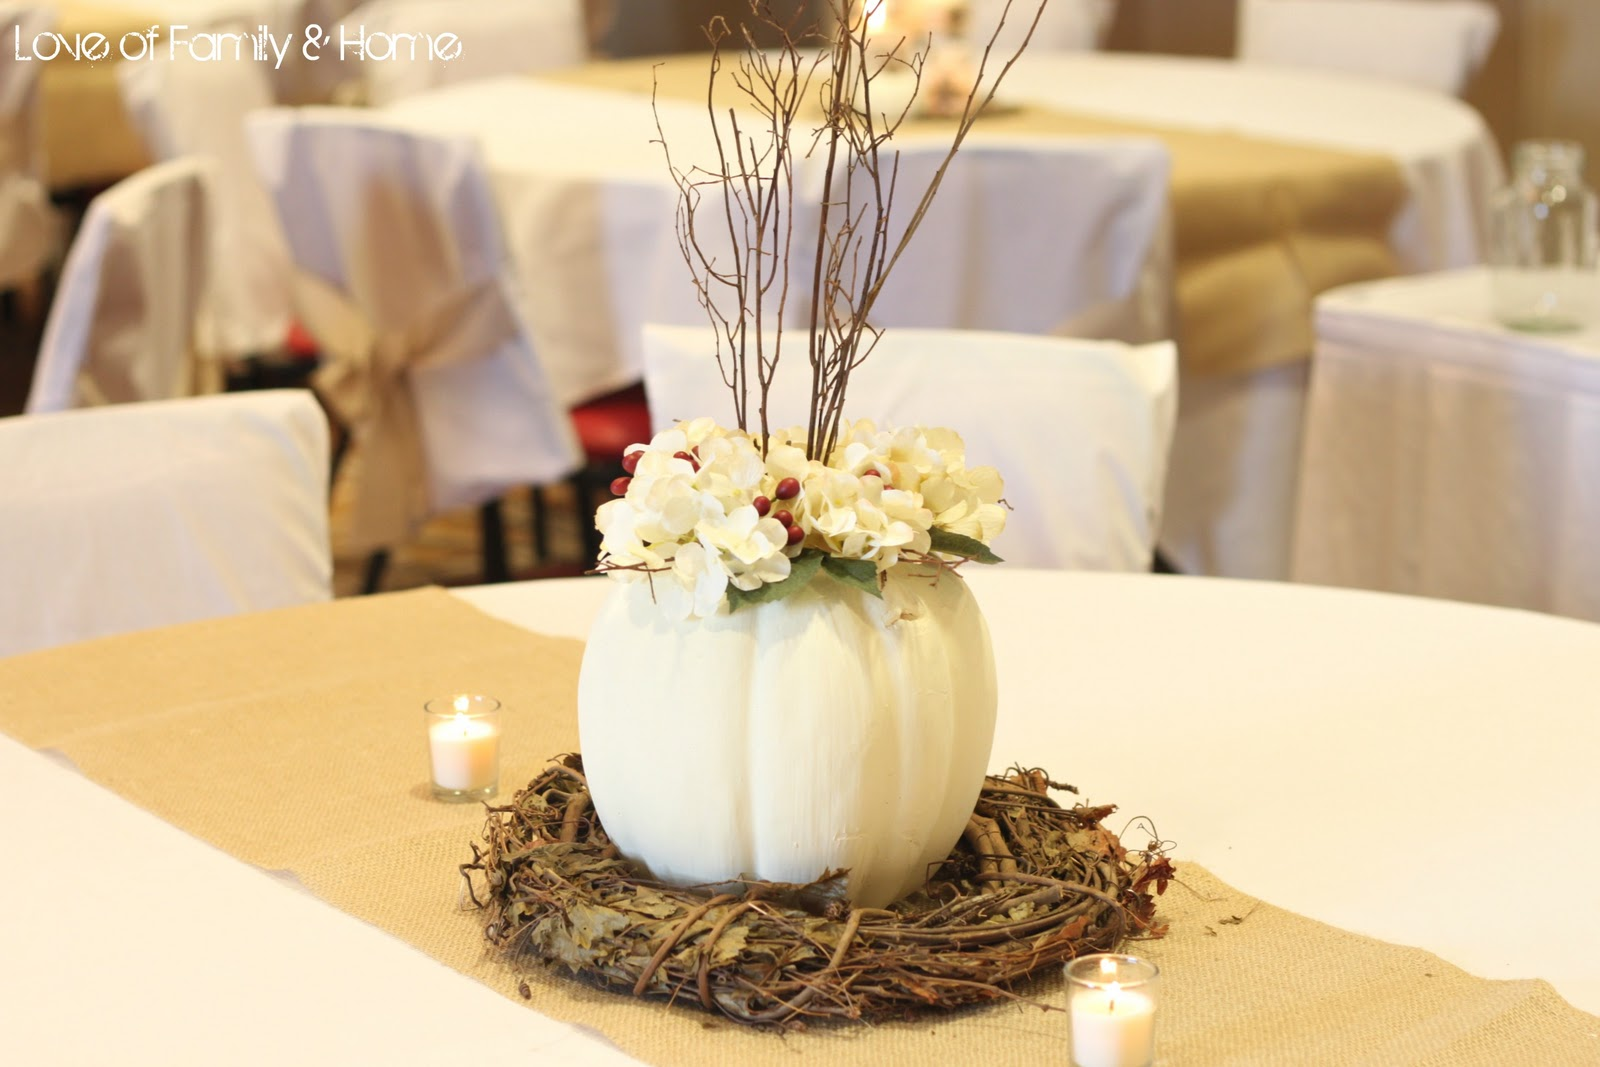 Do It Yourself Weddings: Rustic White Featuring Fall/Winter Looks